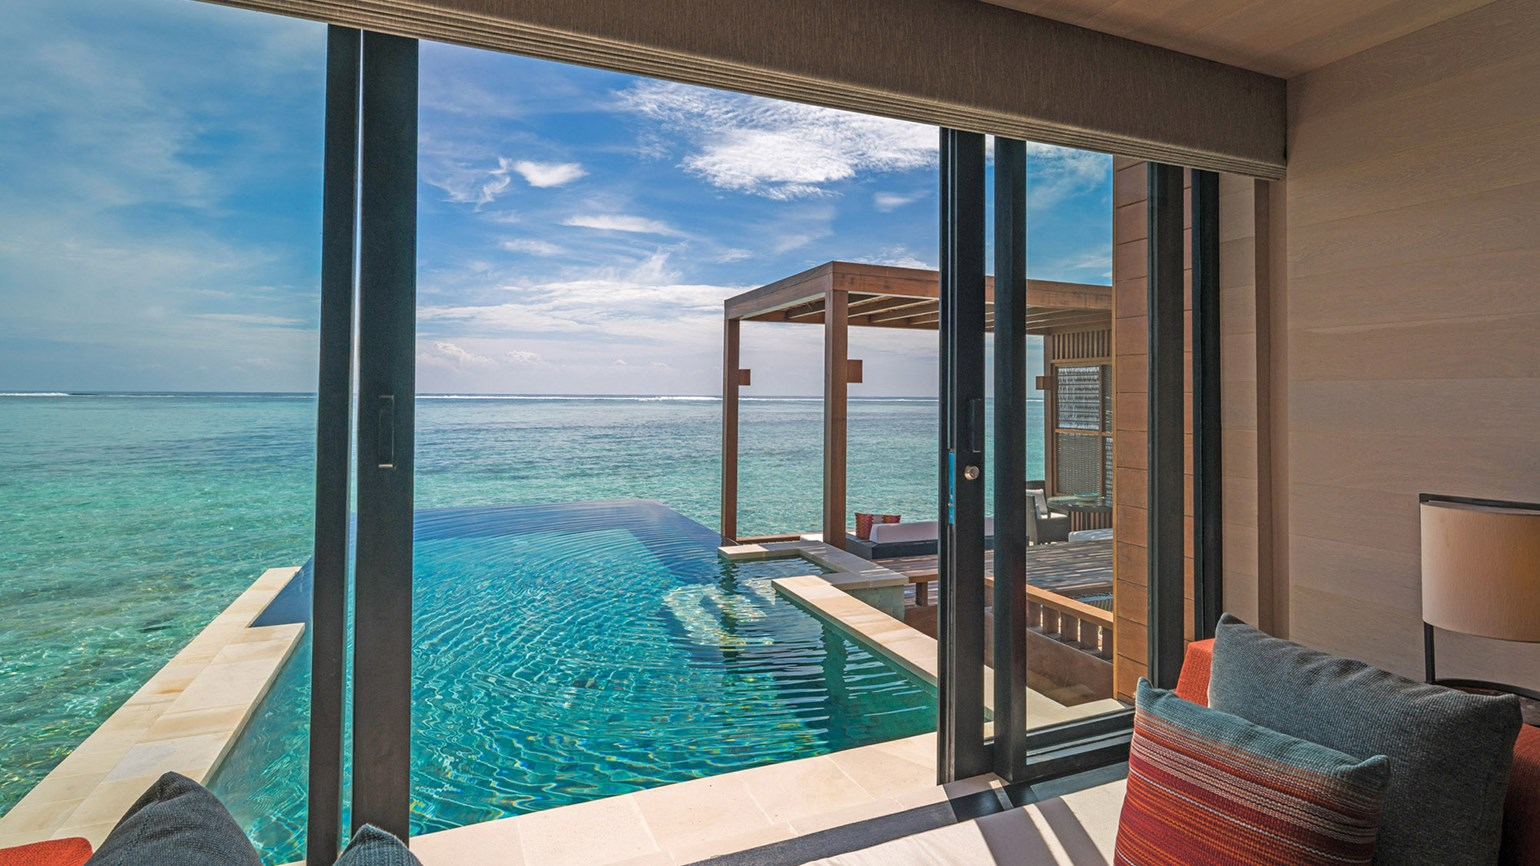 Hotel reopenings: More than 150 Maldives resorts get reopening dates